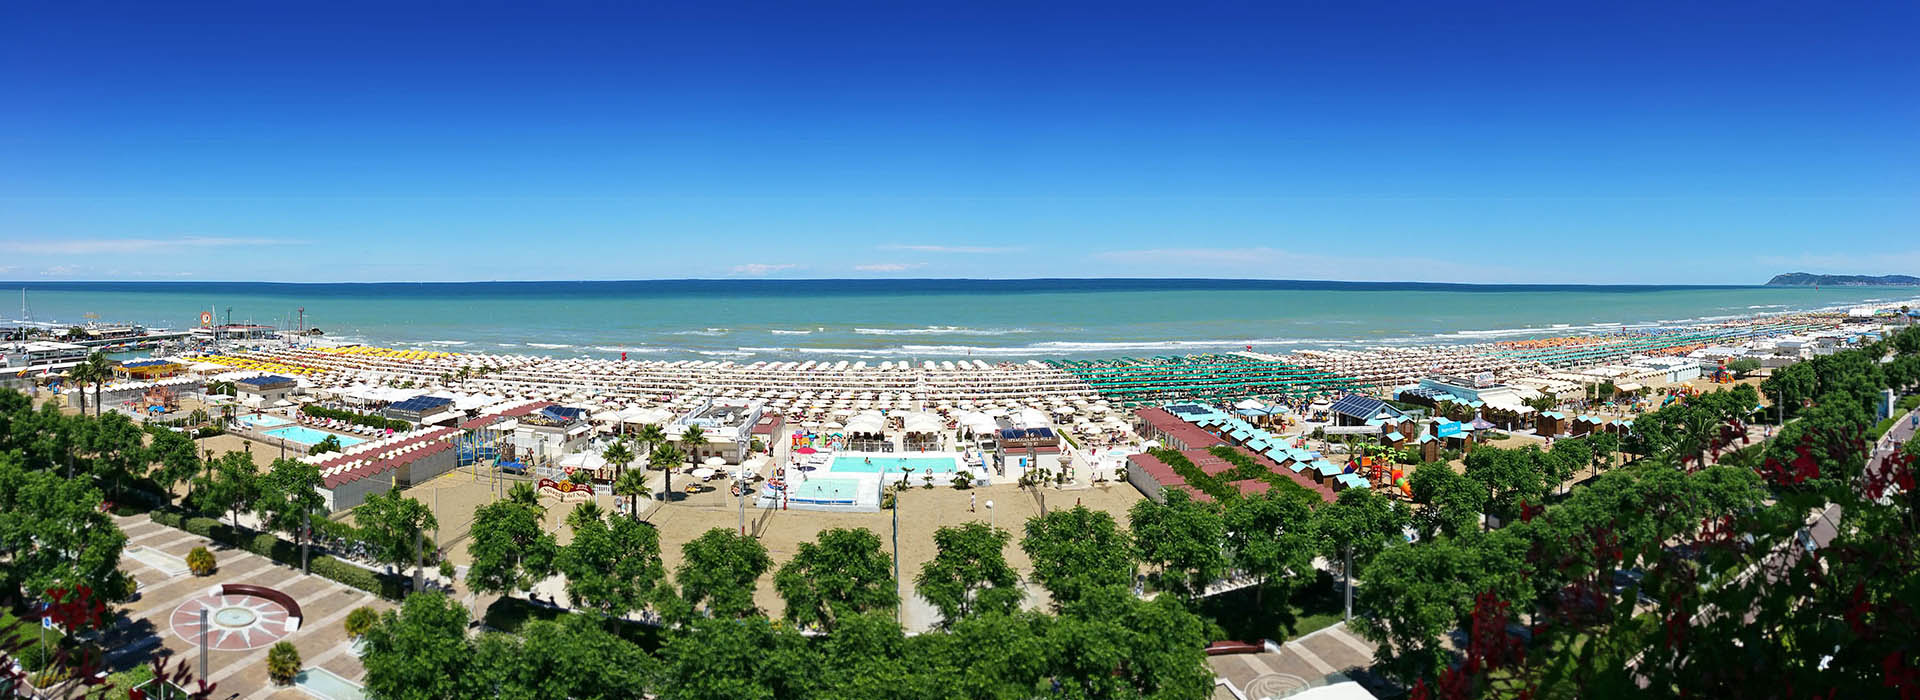 panorama_full_riccione_2015_2_1920_700_hd